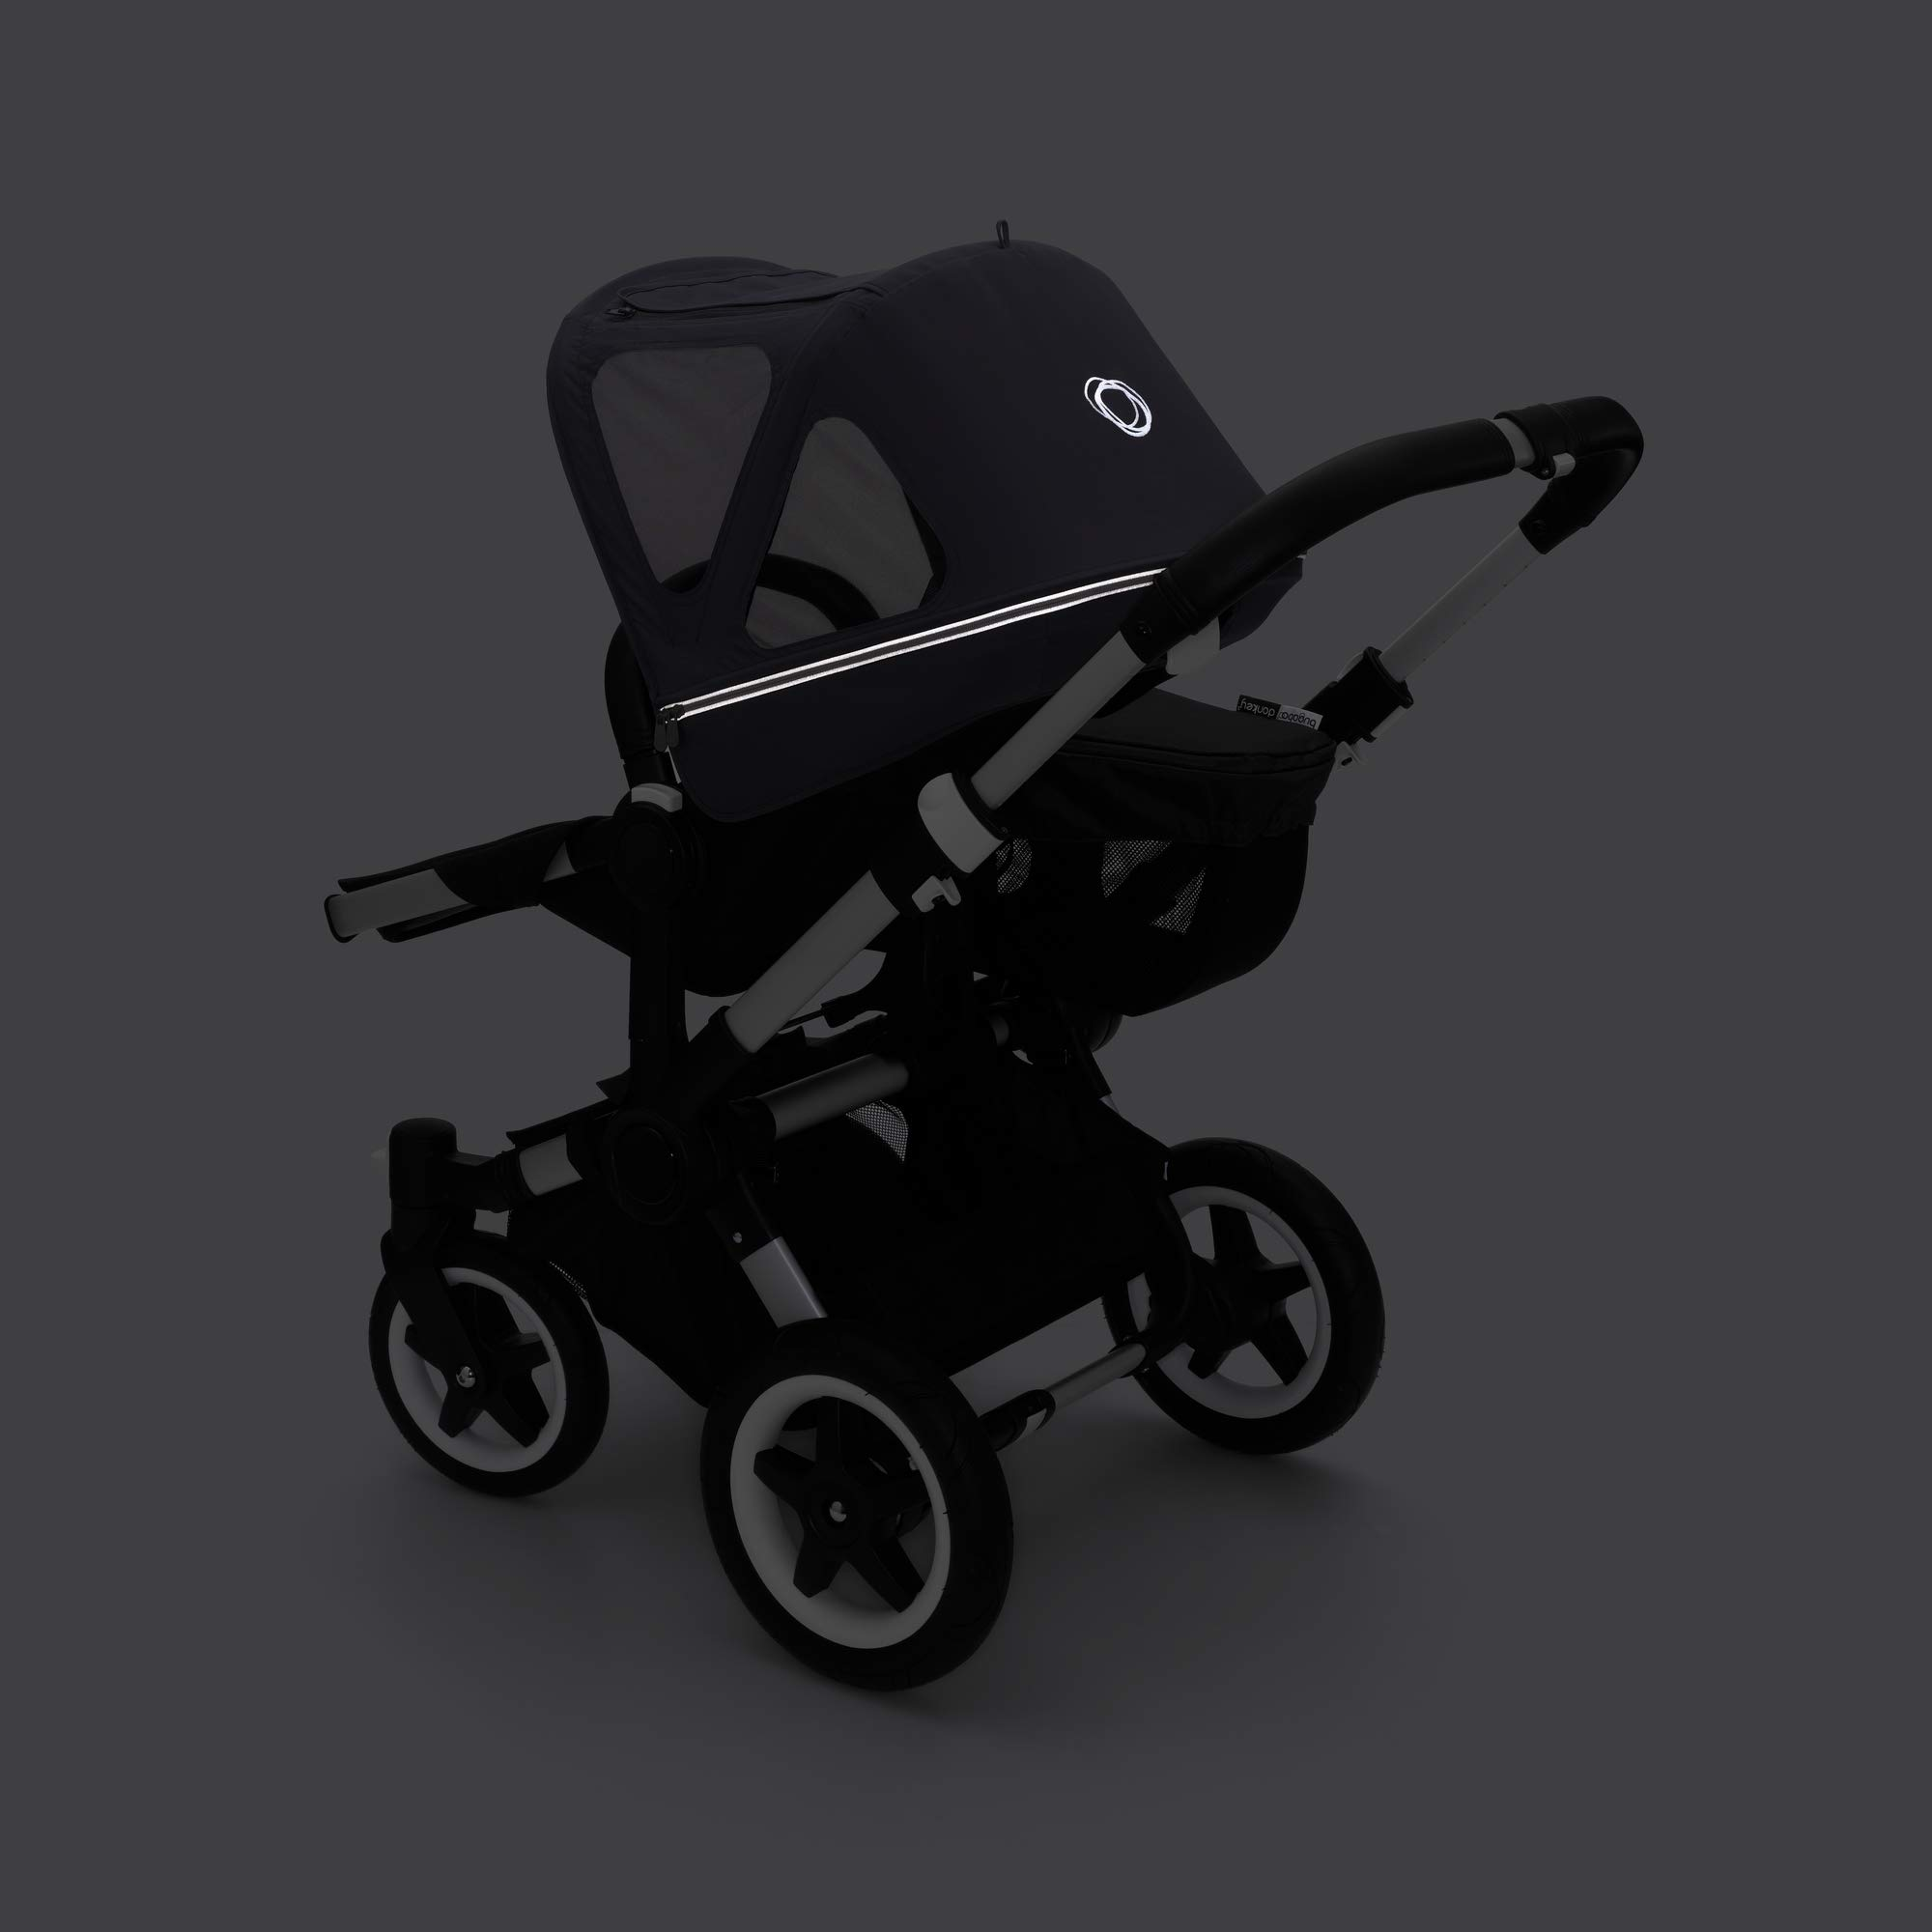 Bugaboo Donkey2 Breezy Sun Canopy, Stellar - Extendable Sun Canopy with Mesh Ventilation Panels, Made with Reflective Materials for Nighttime Strolling